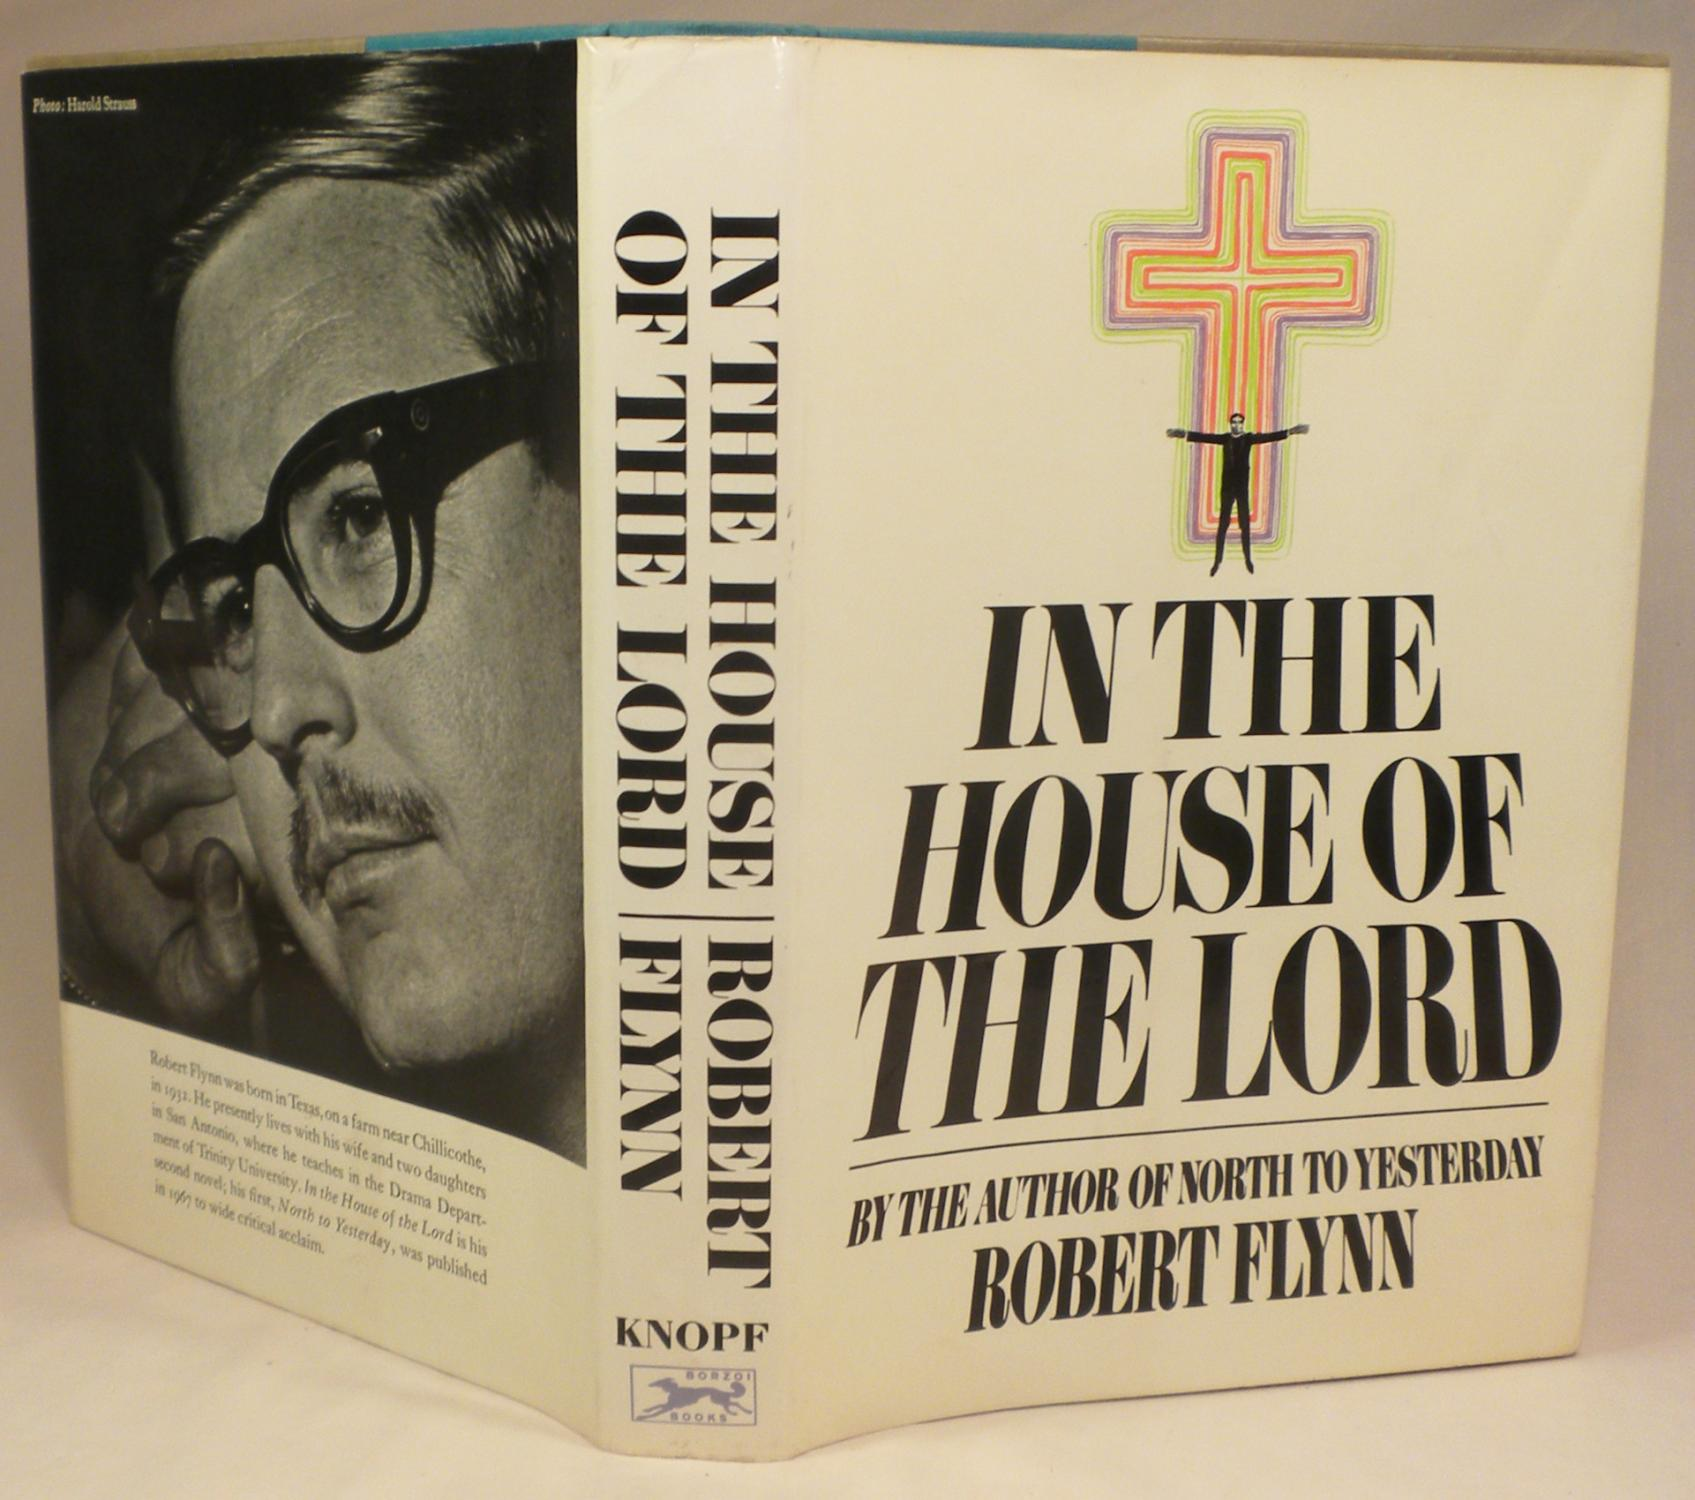 In_the_House_of_the_Lord_Robert_Flynn_Assez_bon_Couverture_rigide